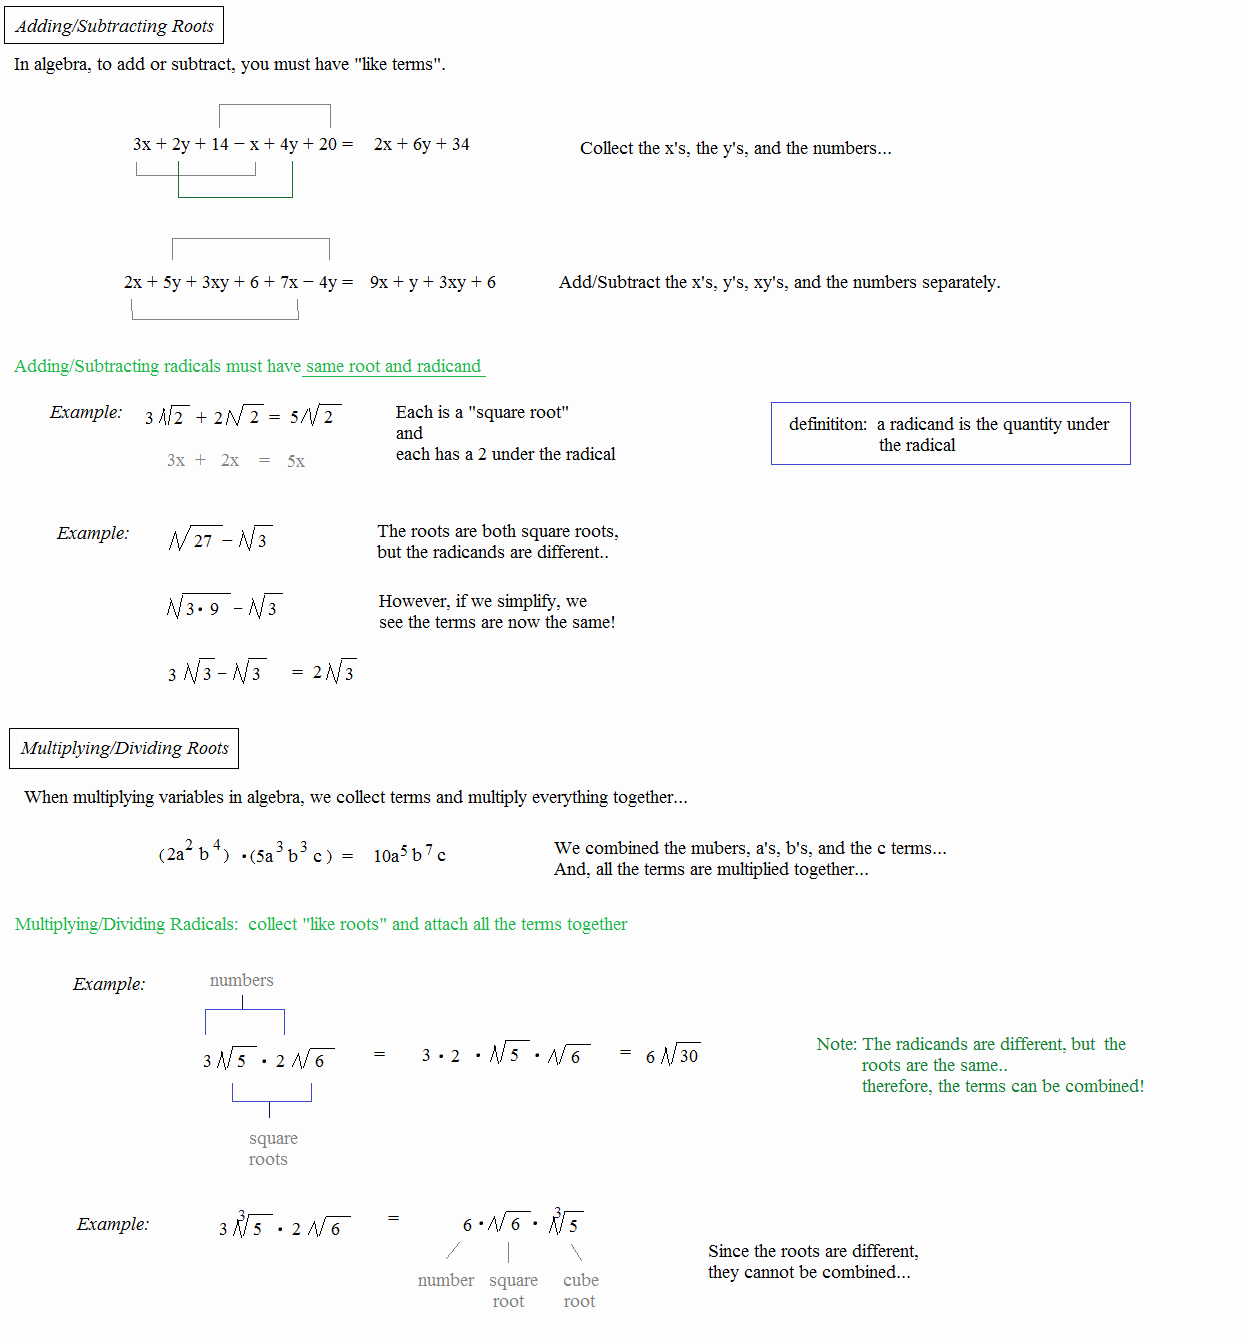 Adding and Subtracting Radicals Worksheet Fresh Adding and Subtracting Time Worksheets Worksheet Mogenk